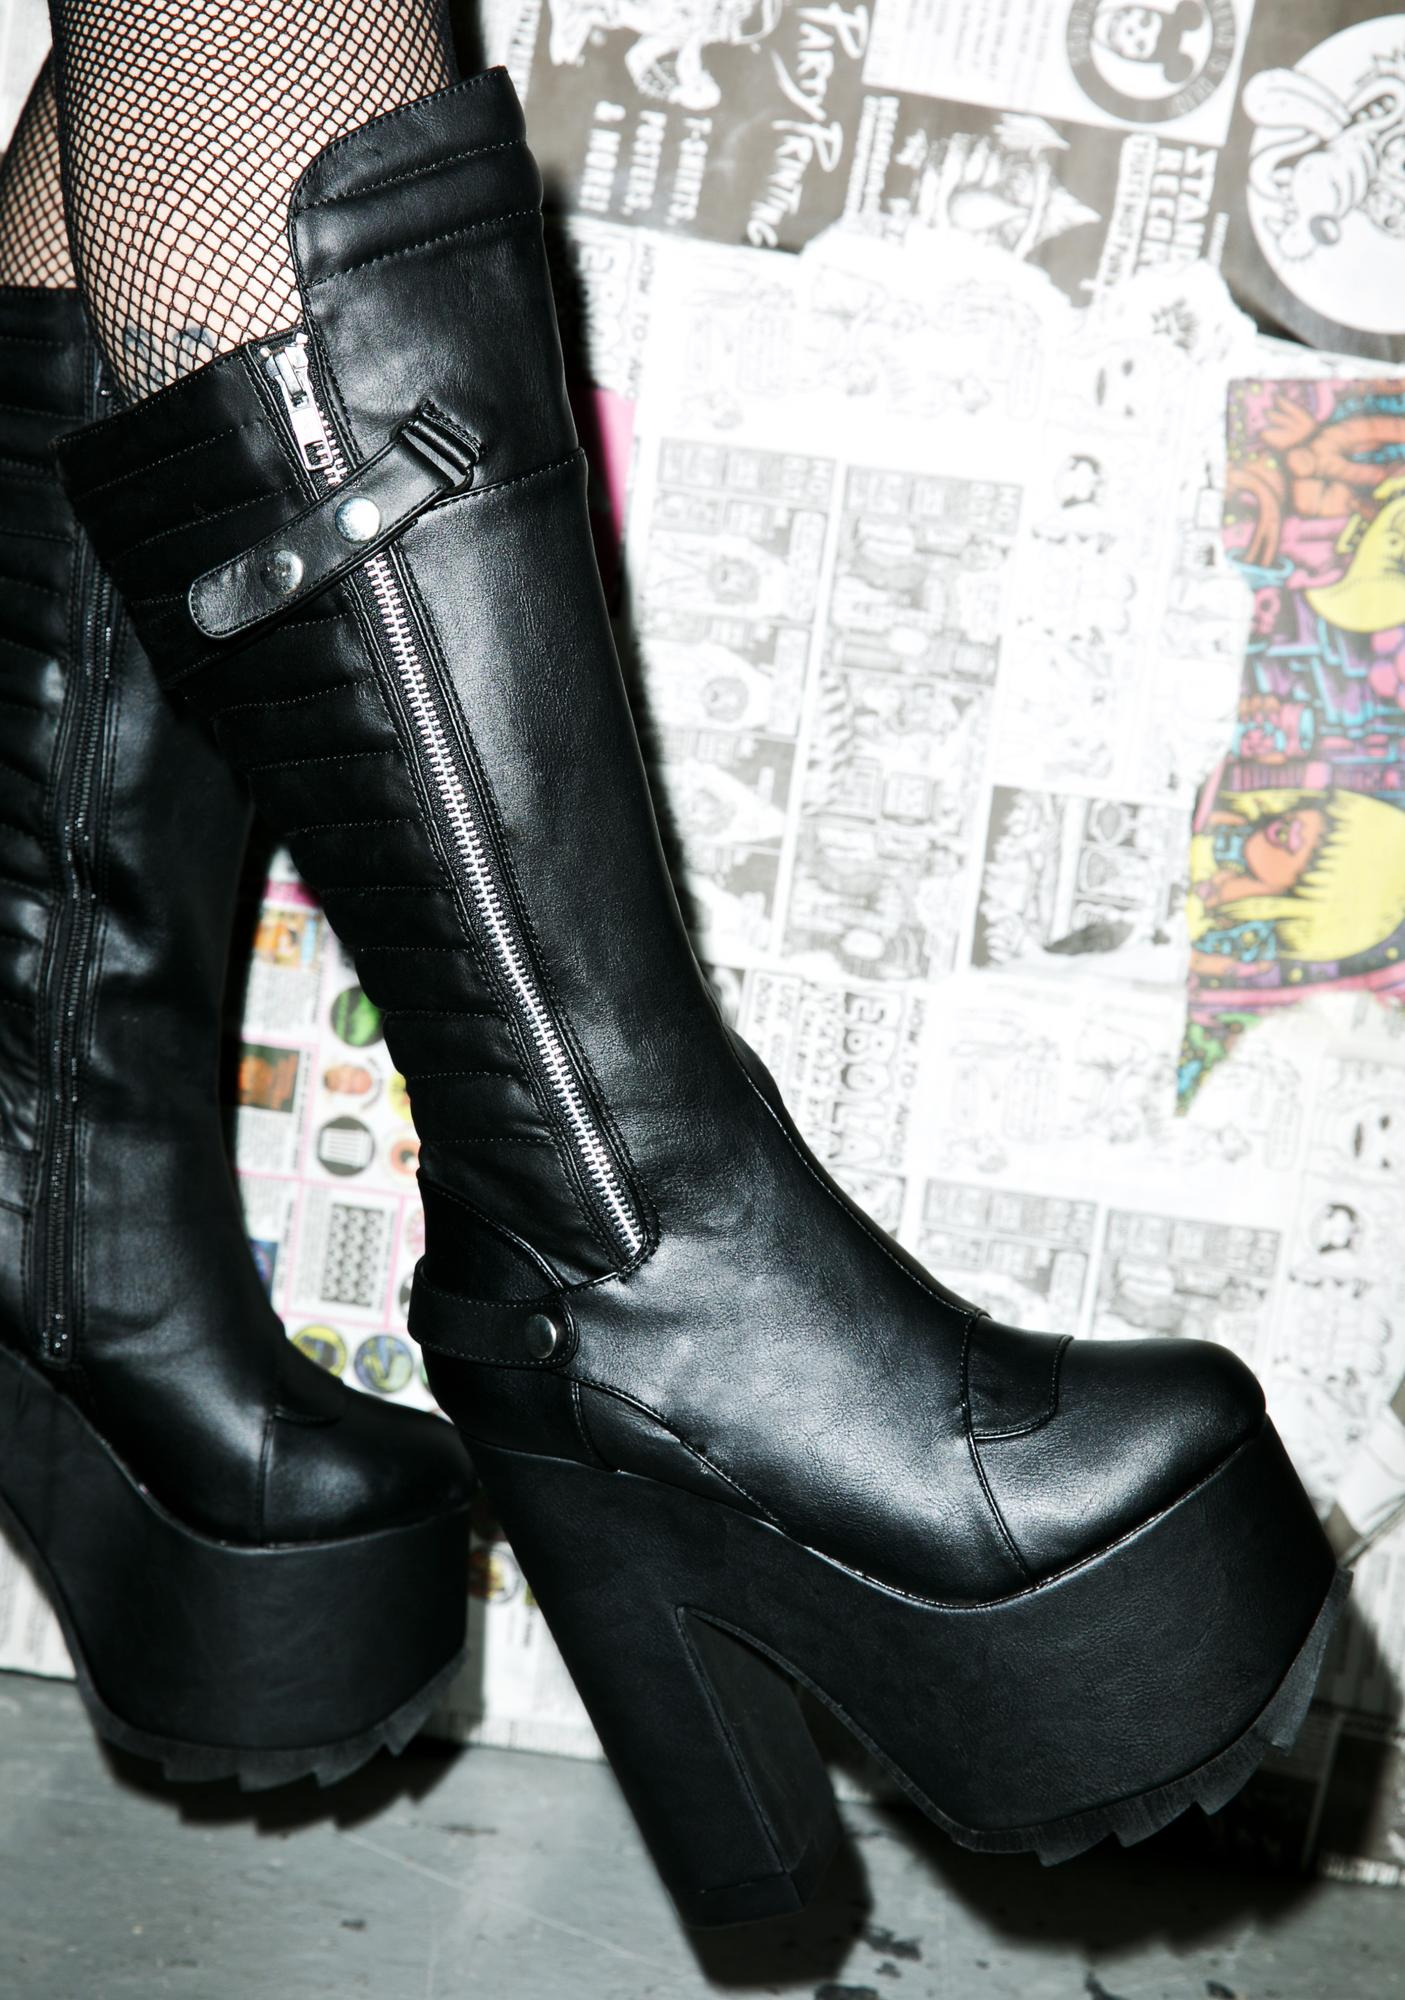 Demonia Ultraviolence Boots